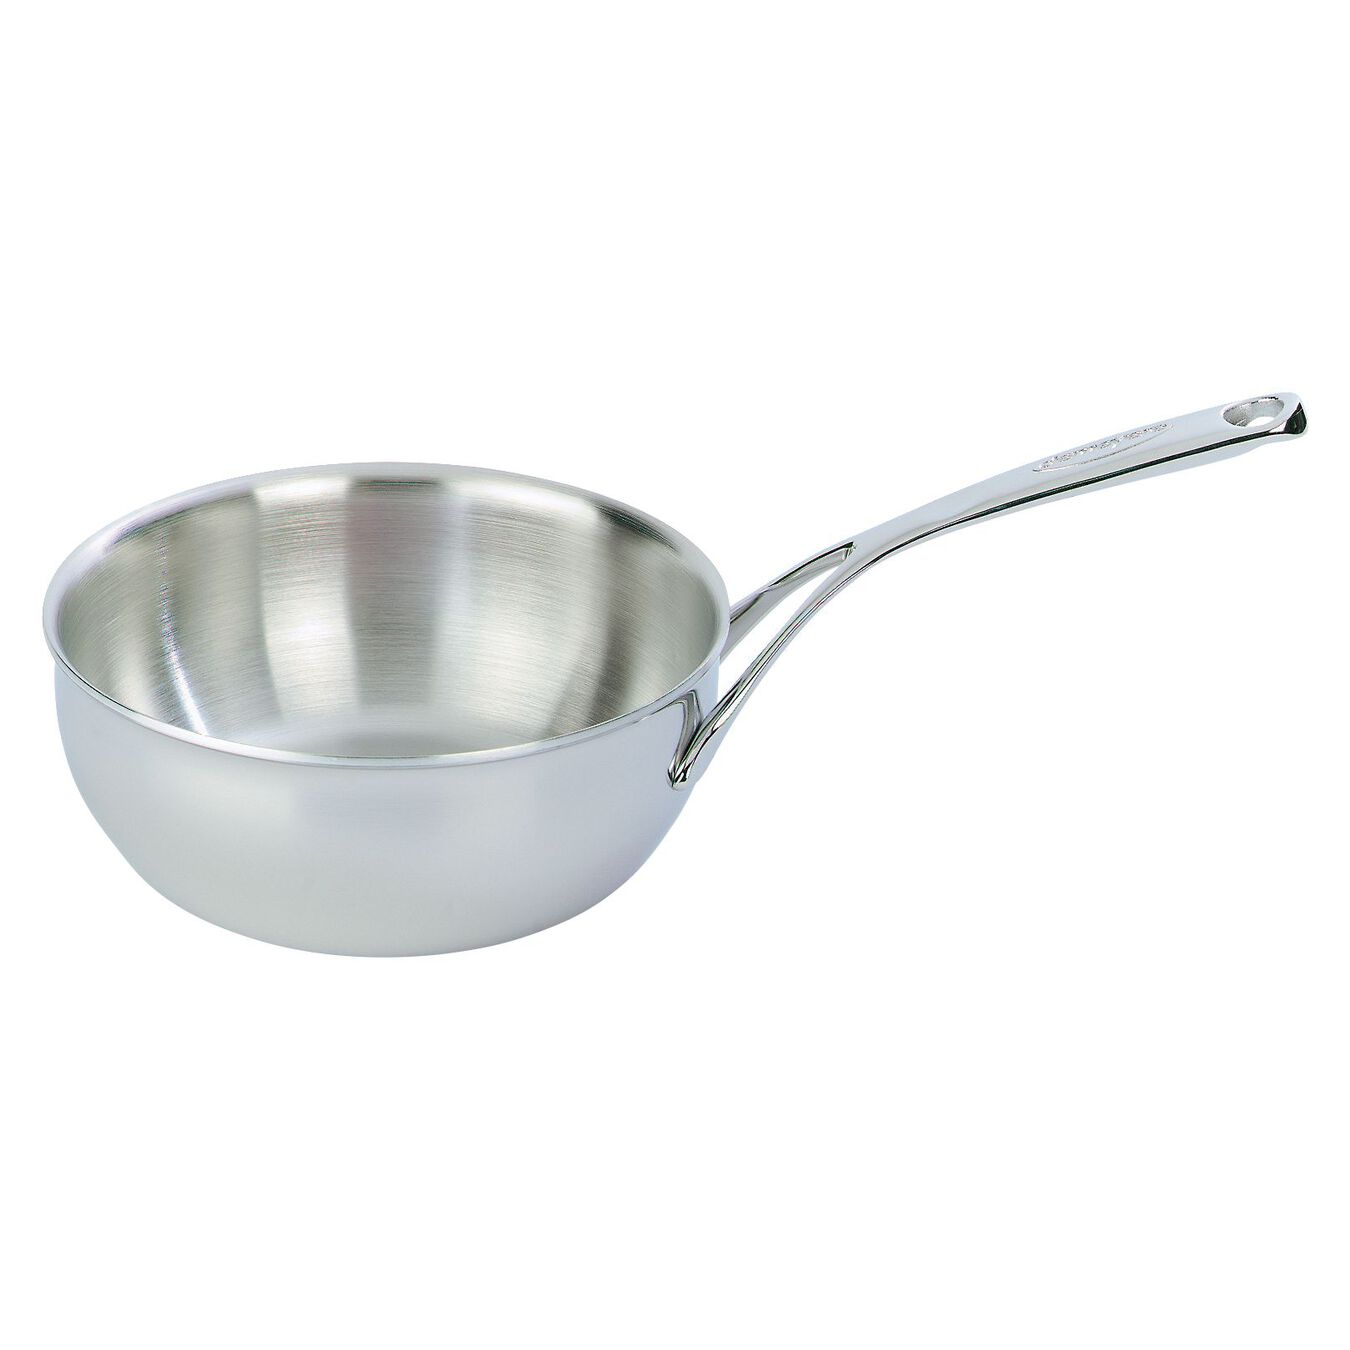 1.5 L 18/10 STAINLESS STEEL CONICAL SAUCEPAN,,large 2